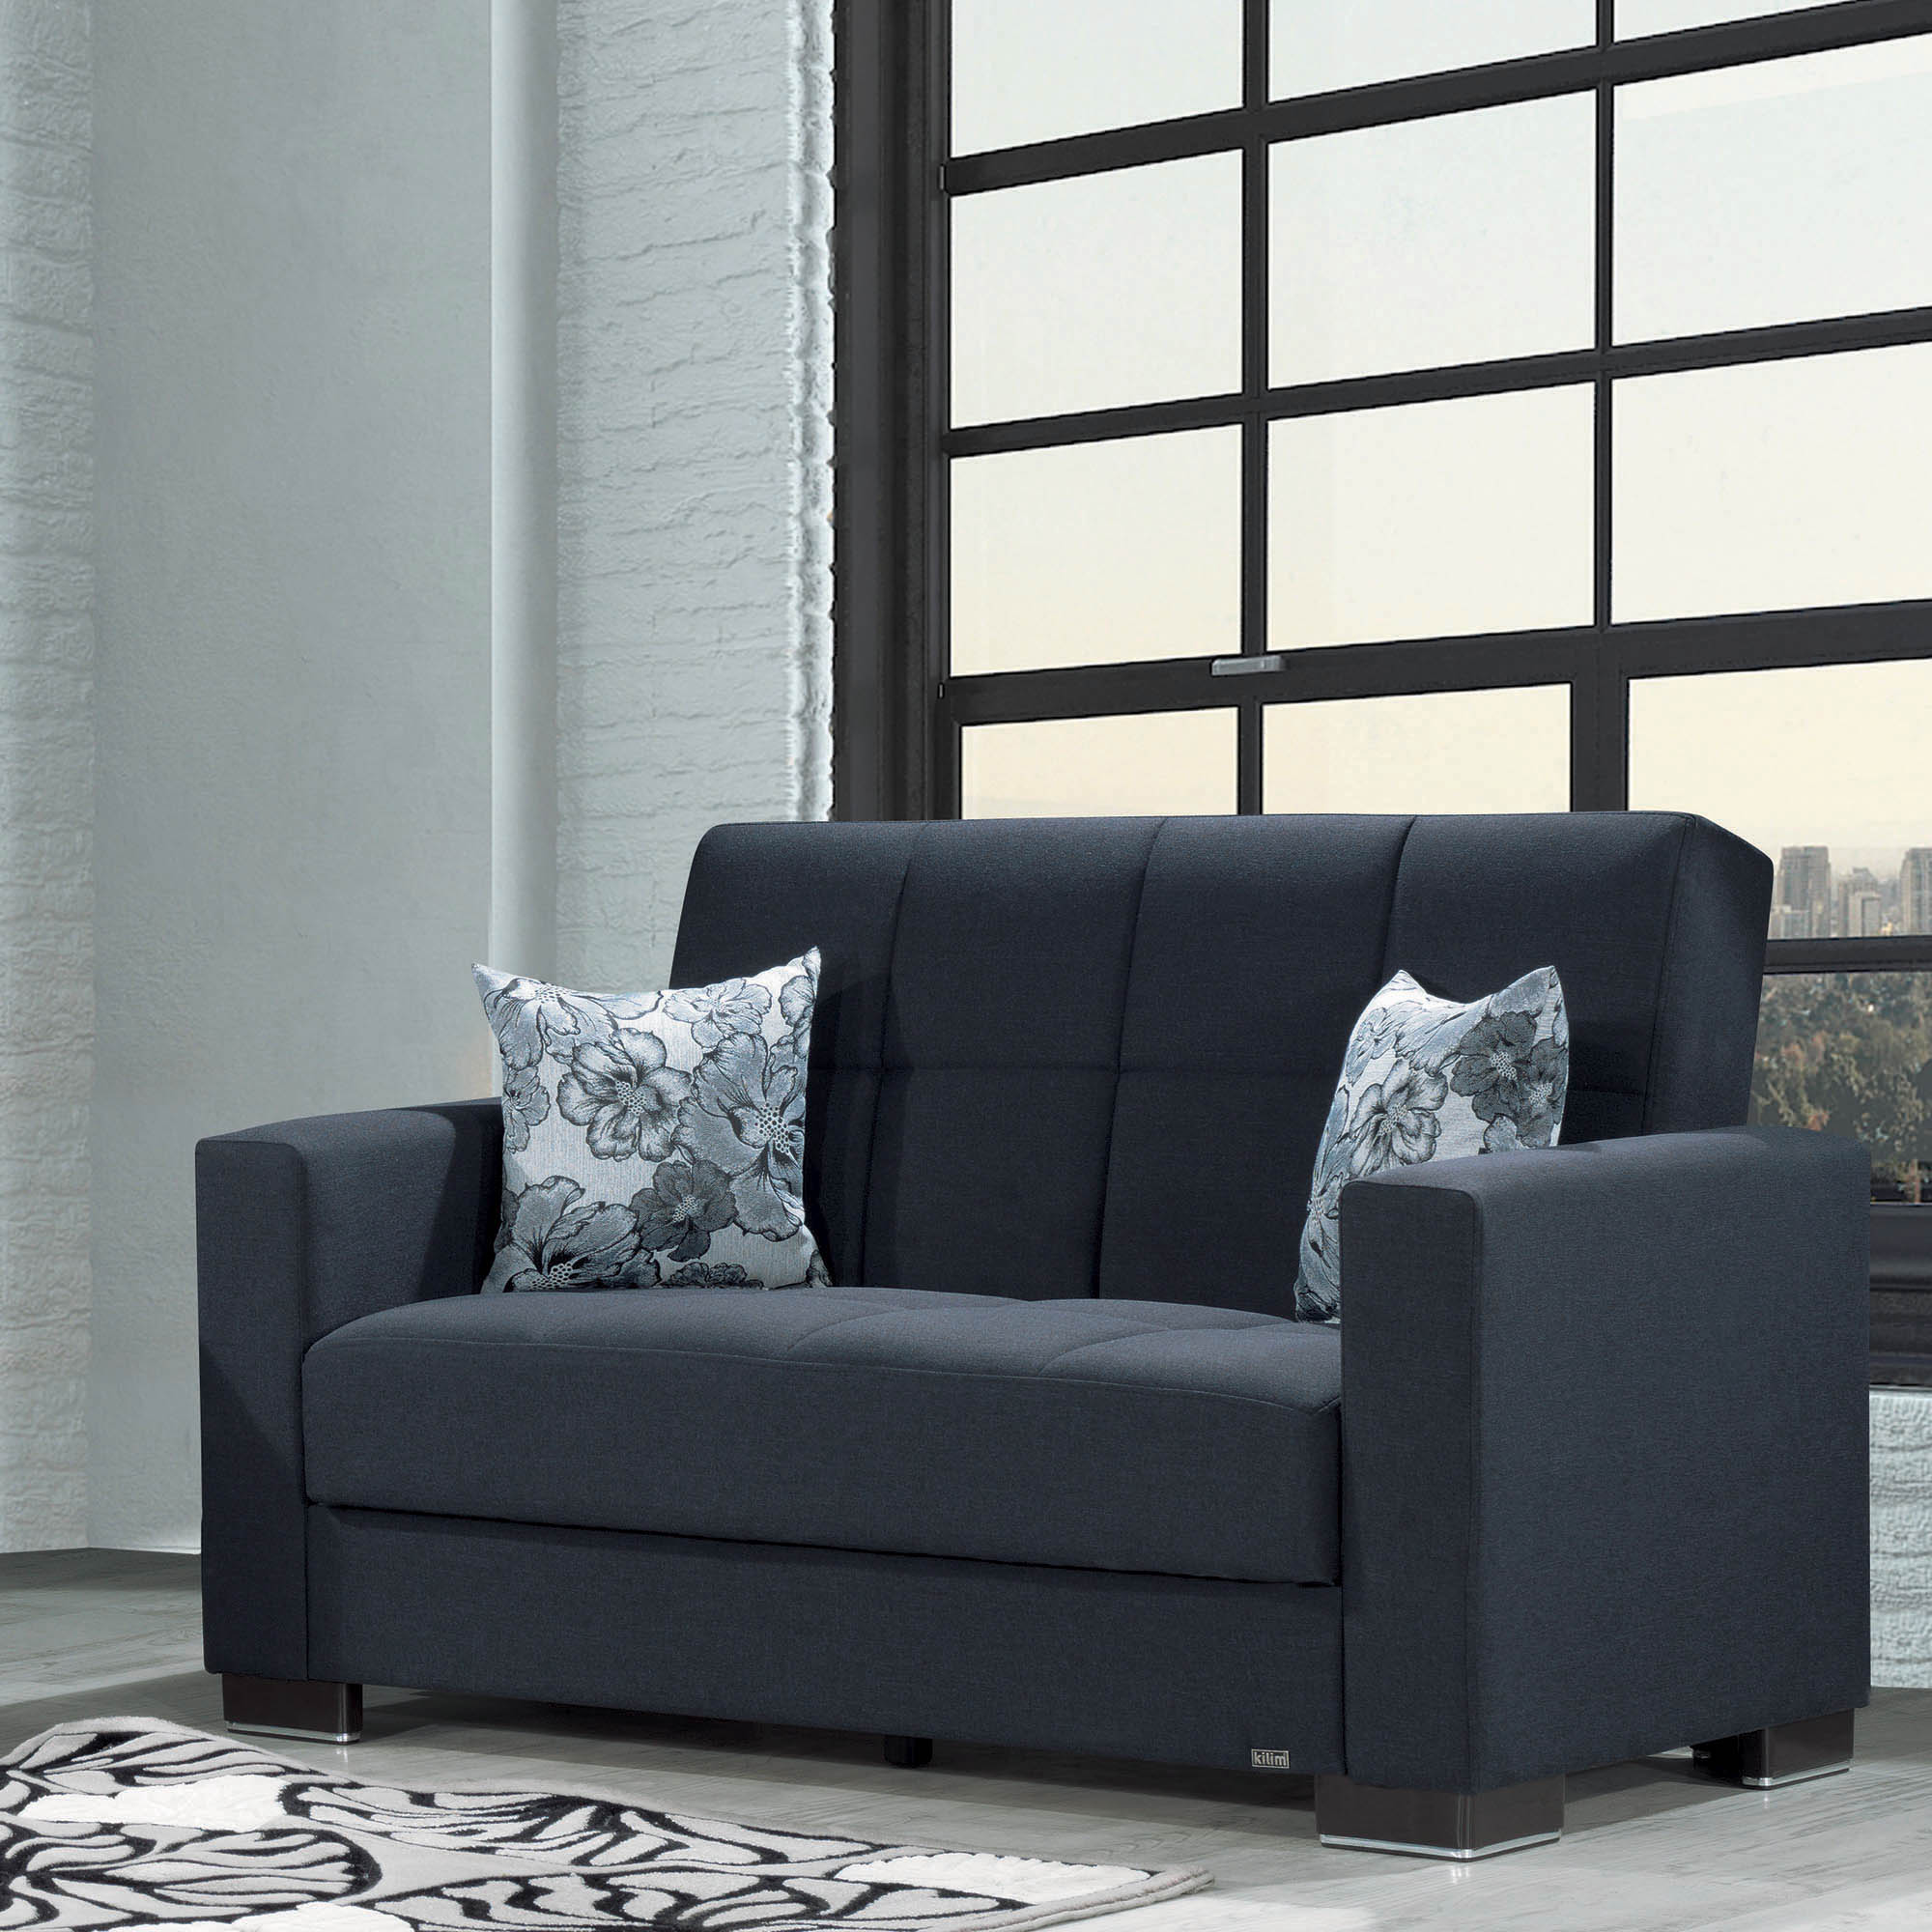 Armada Fabric Upholstery Love Seat with Storage